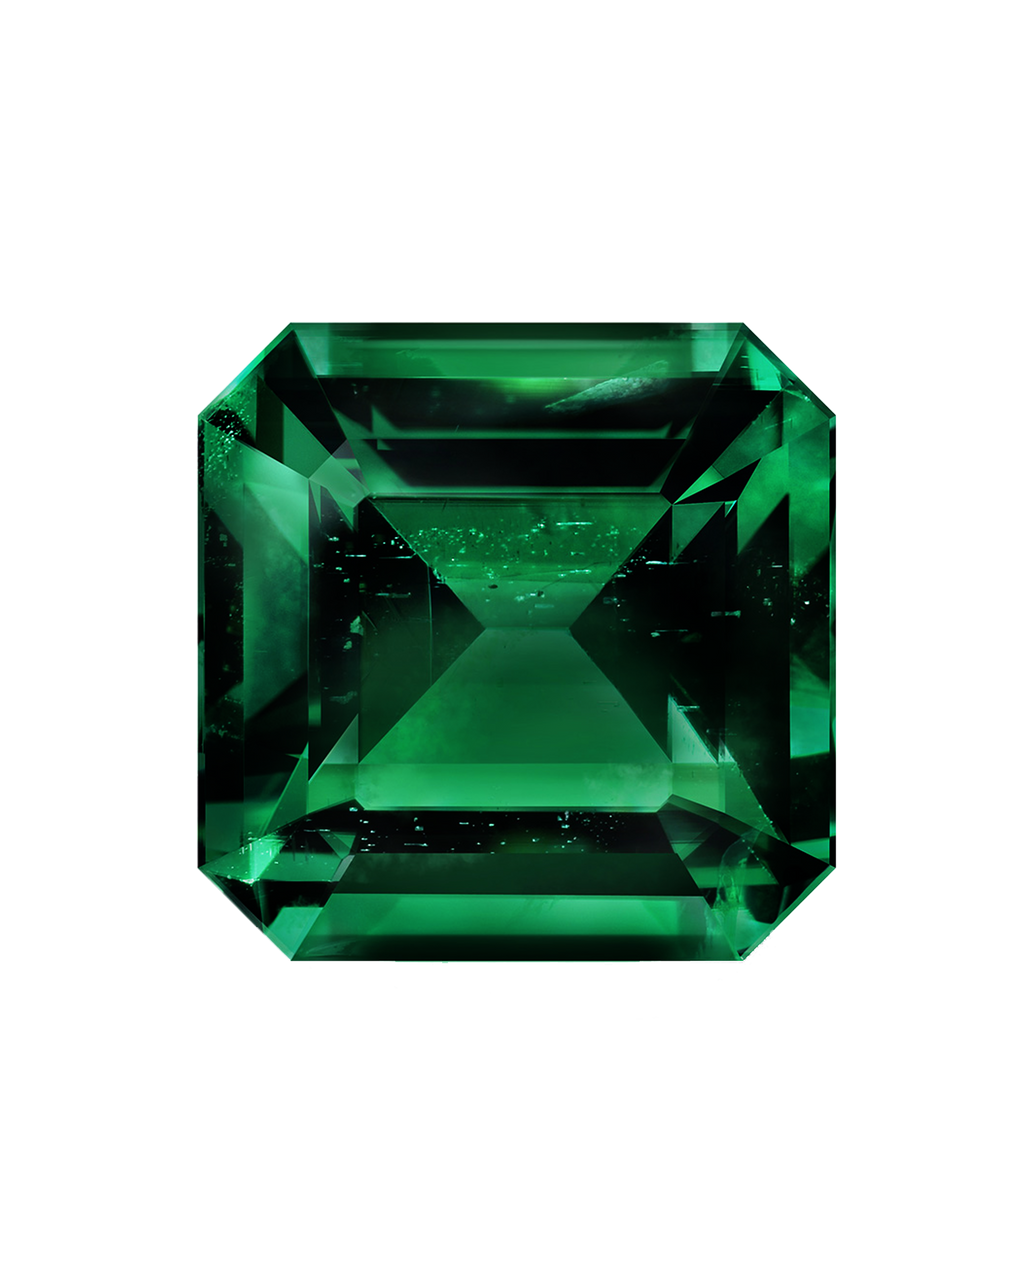 jewel up dark a of emerald close stock dof online shallow picture on background